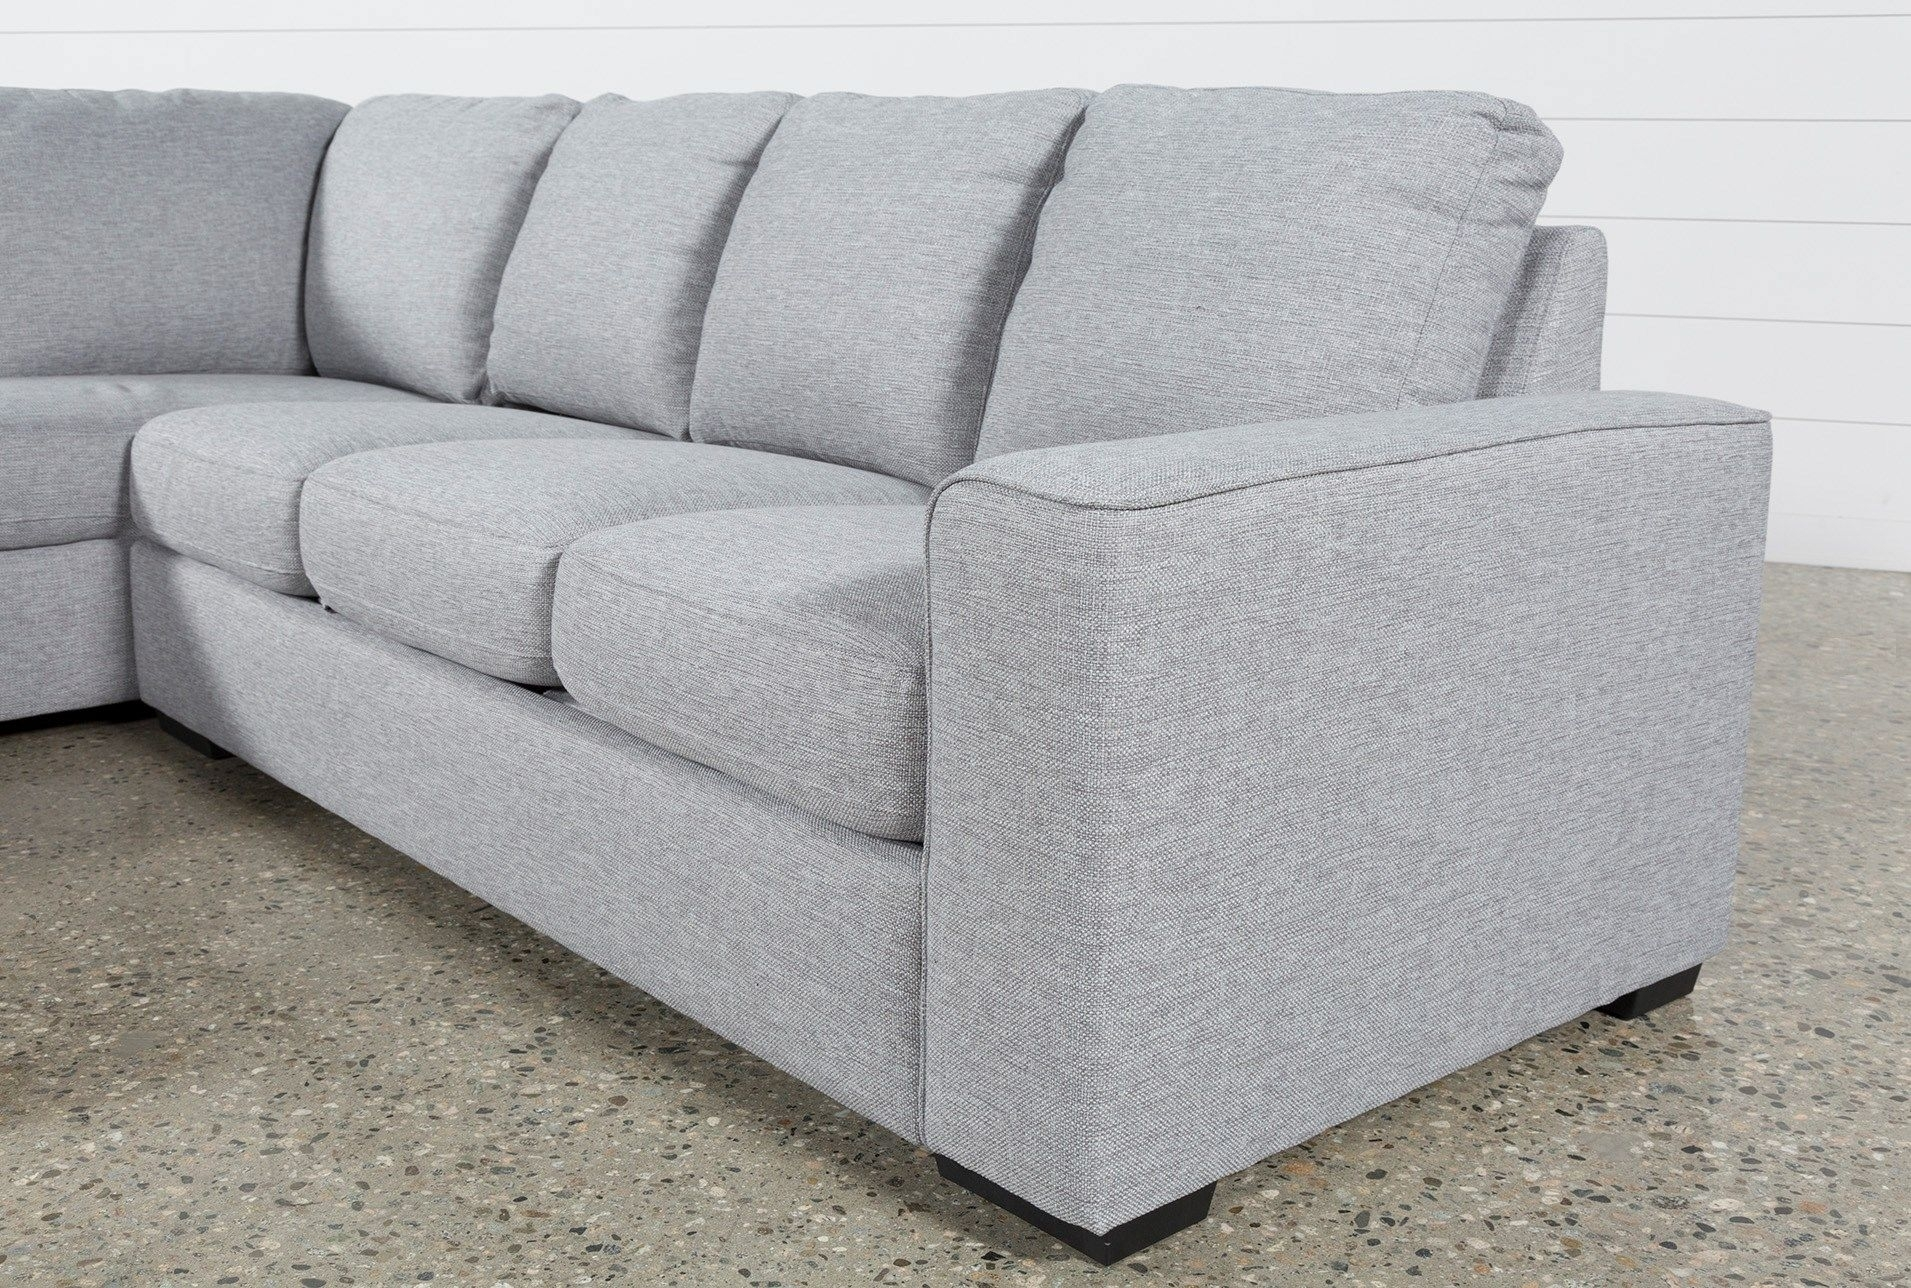 Lucy Grey 2 Piece Sectional W/laf Chaise | Gray And Room With Regard To Arrowmask 2 Piece Sectionals With Sleeper & Left Facing Chaise (View 11 of 25)